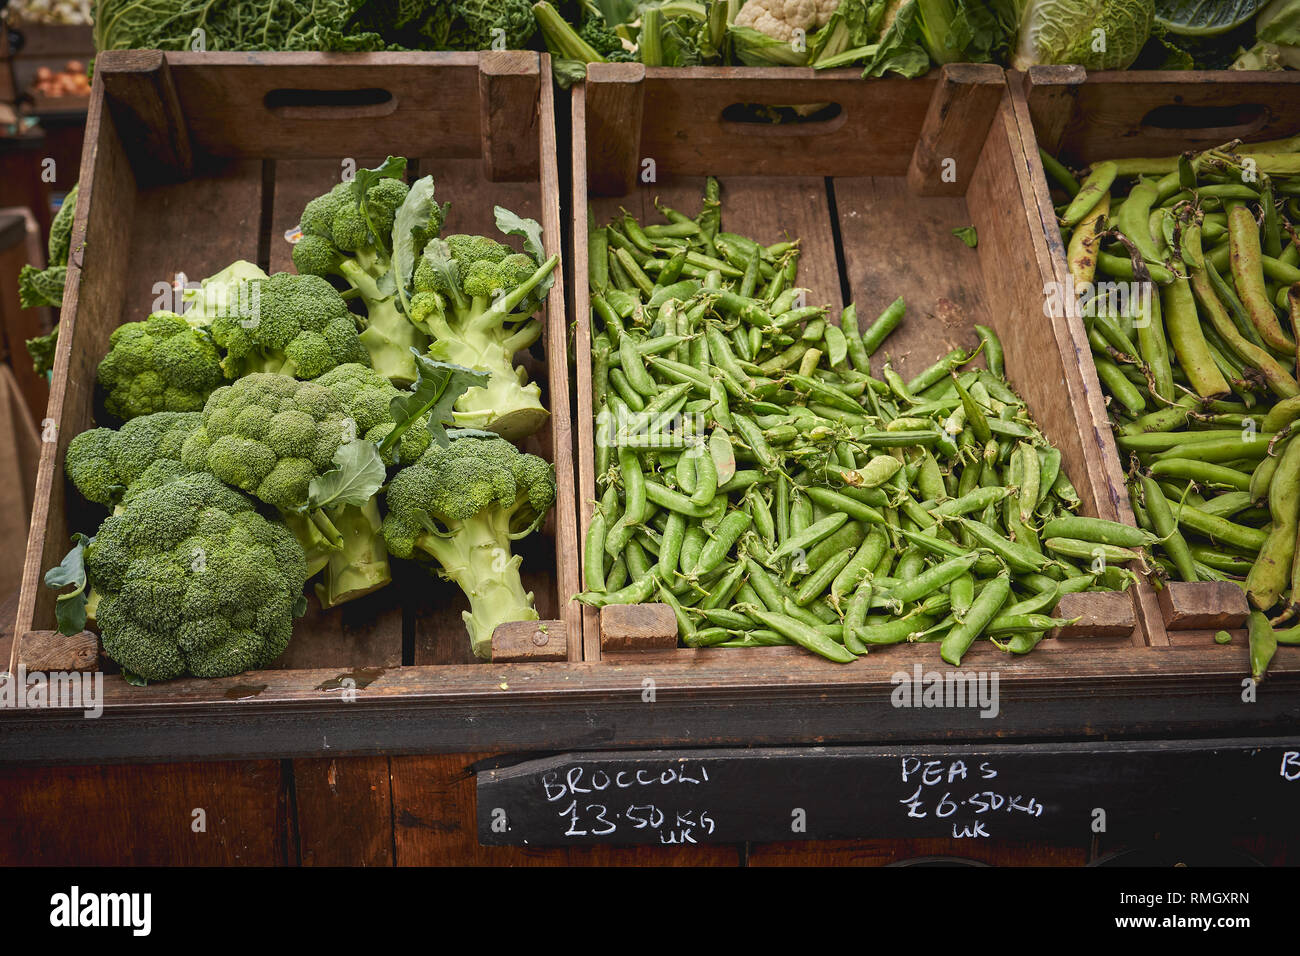 London, UK - June, 2018. Green groceries including courgettes, aubergines, asparagus, peppers and broccoli on sale at a vegetables stall in a market. Stock Photo